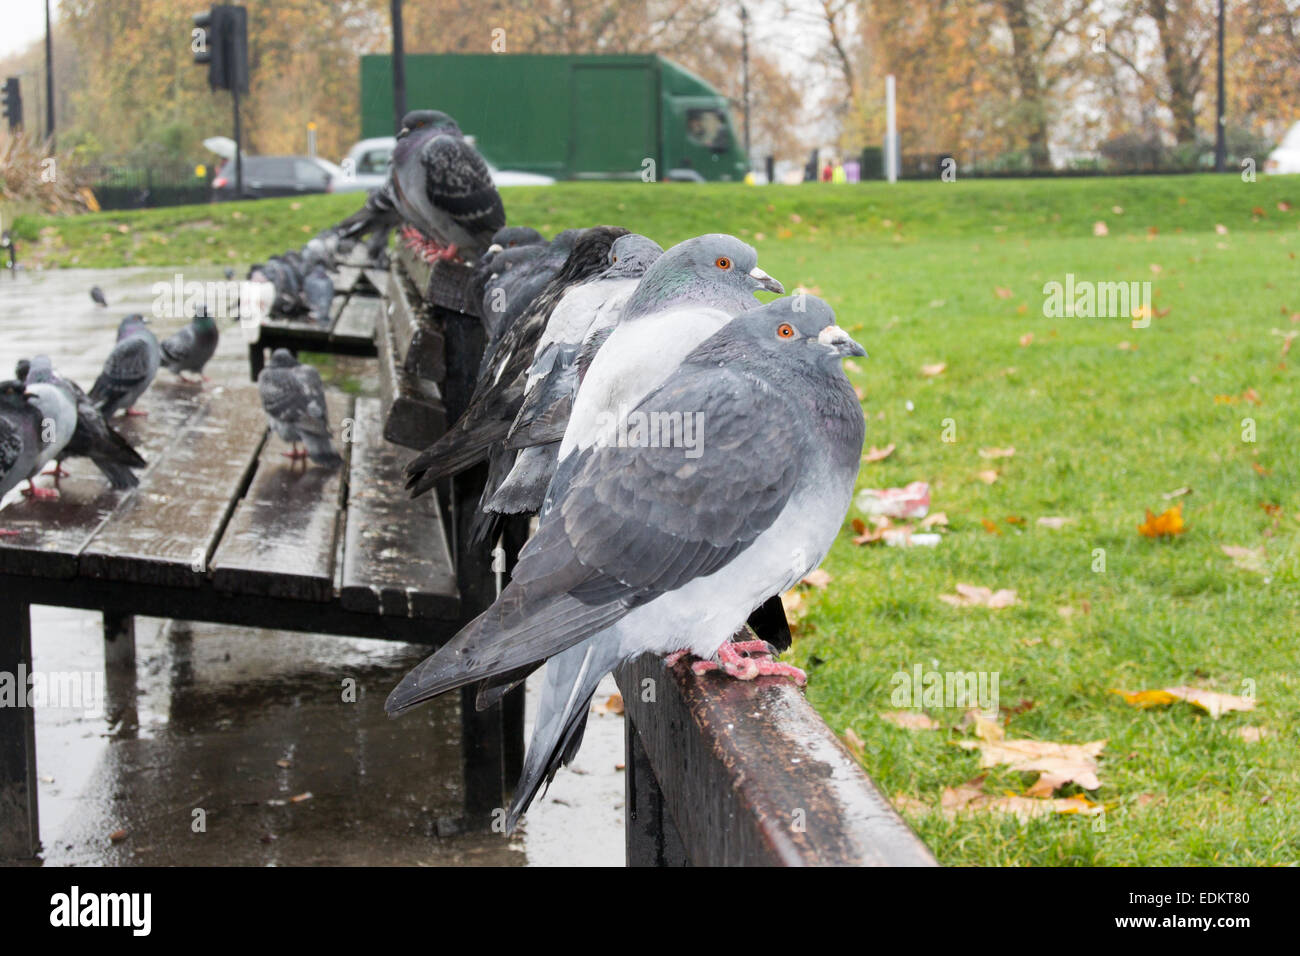 Feral pigeons sitting on park bench in London, UK - Stock Image